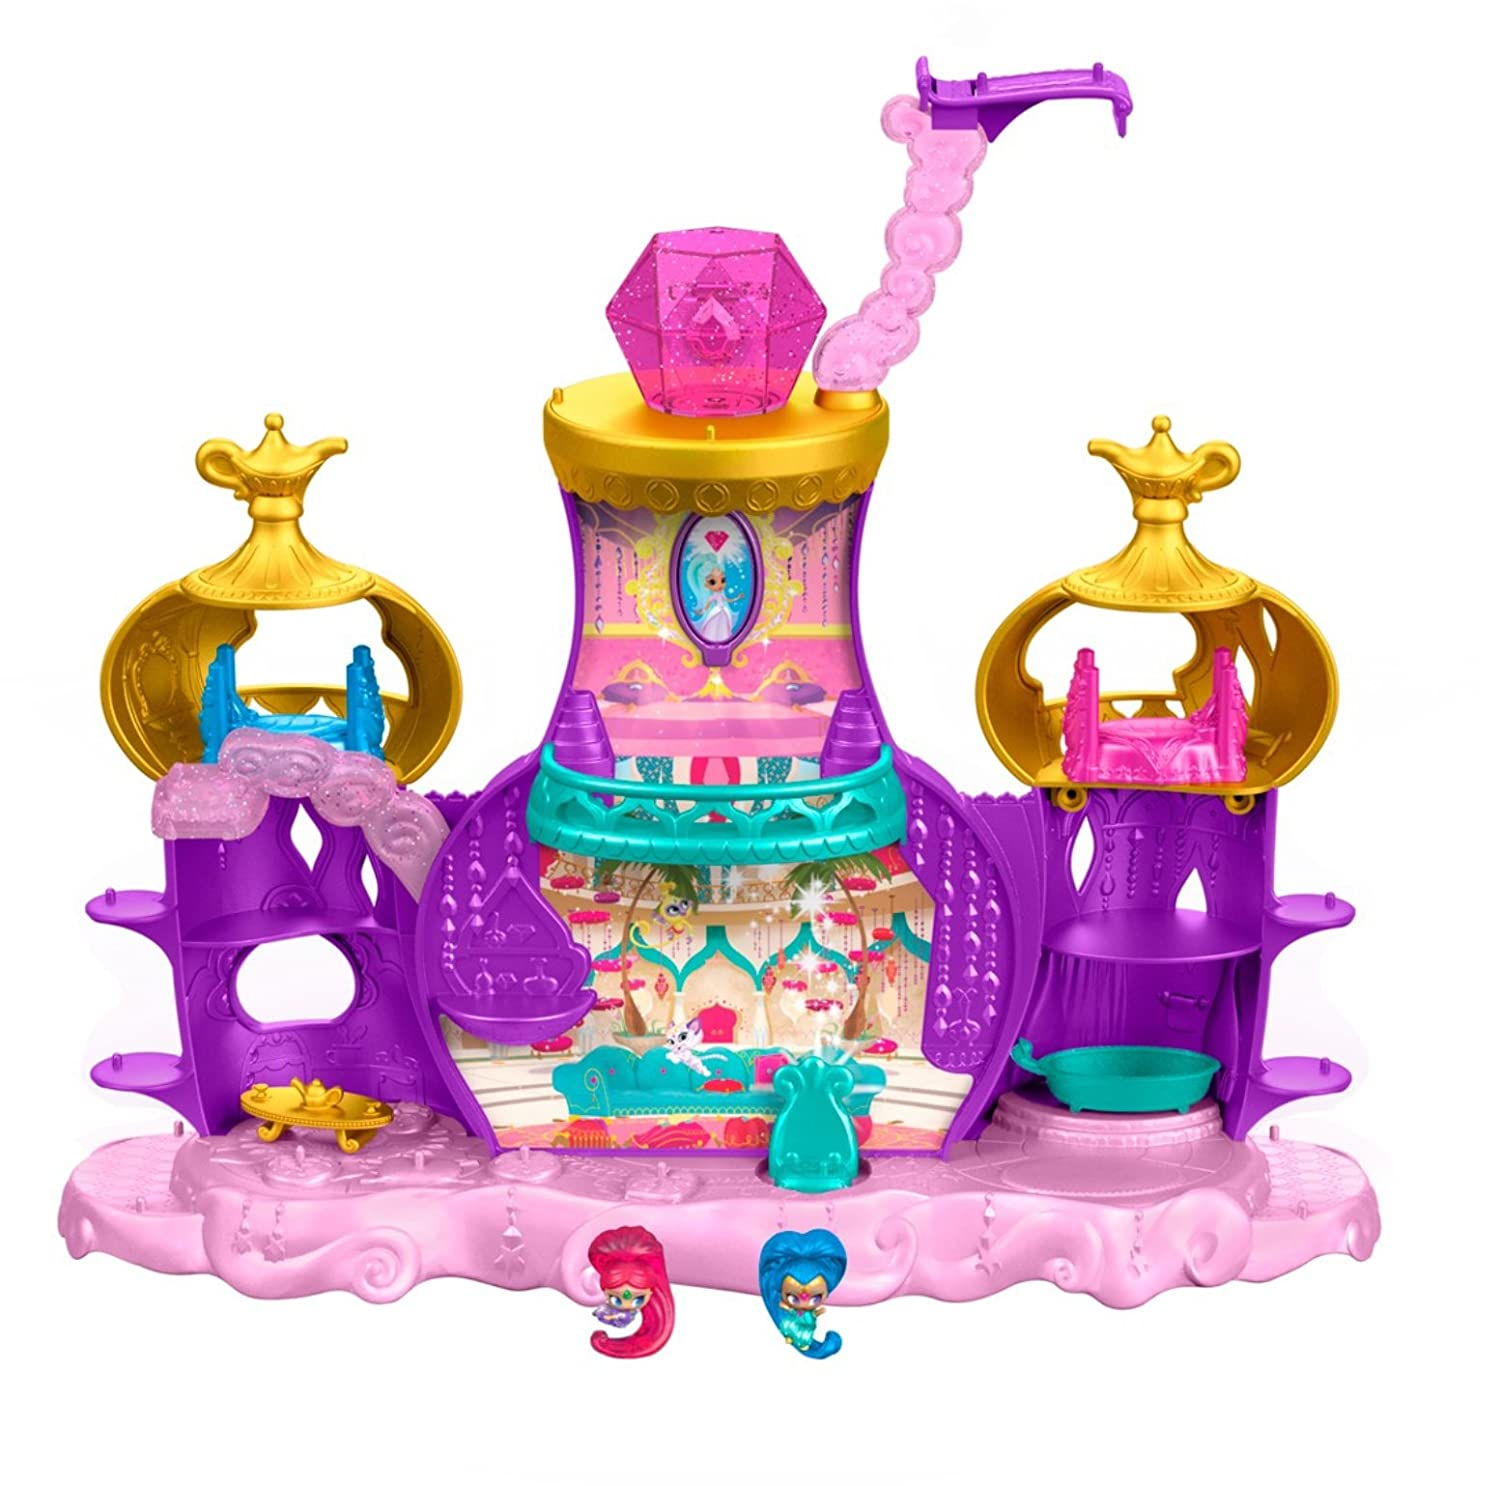 0471253d8 Amazon.com: Fisher-Price Nickelodeon Shimmer & Shine, Teenie Genies,  Floating Genie Palace Playset: Toys & Games